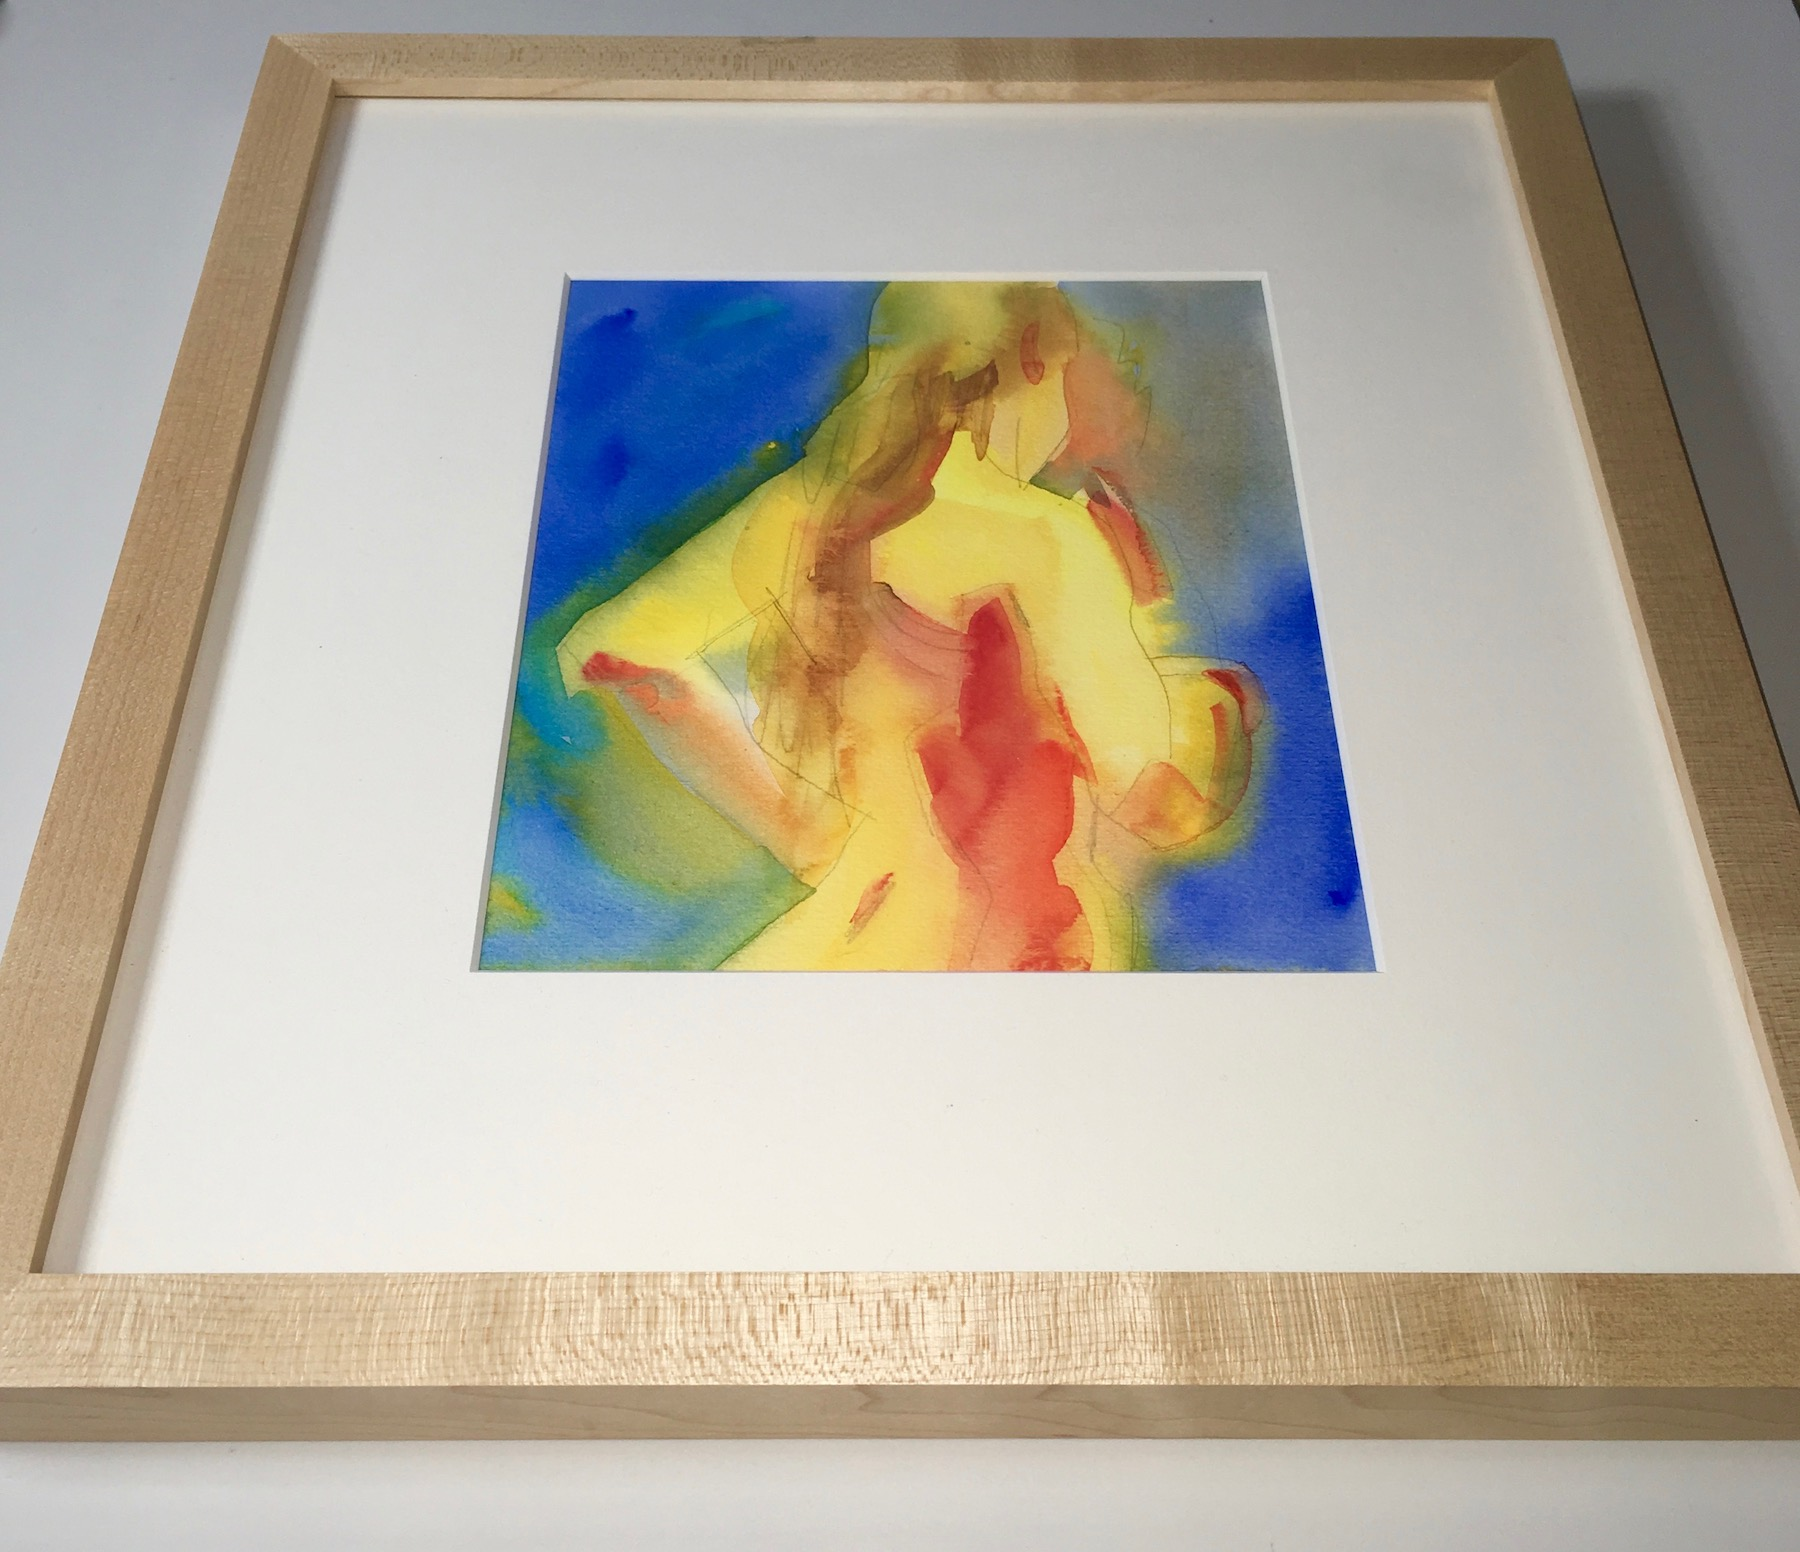 Available for purchase - View all available for purchase figurative watercolors here.